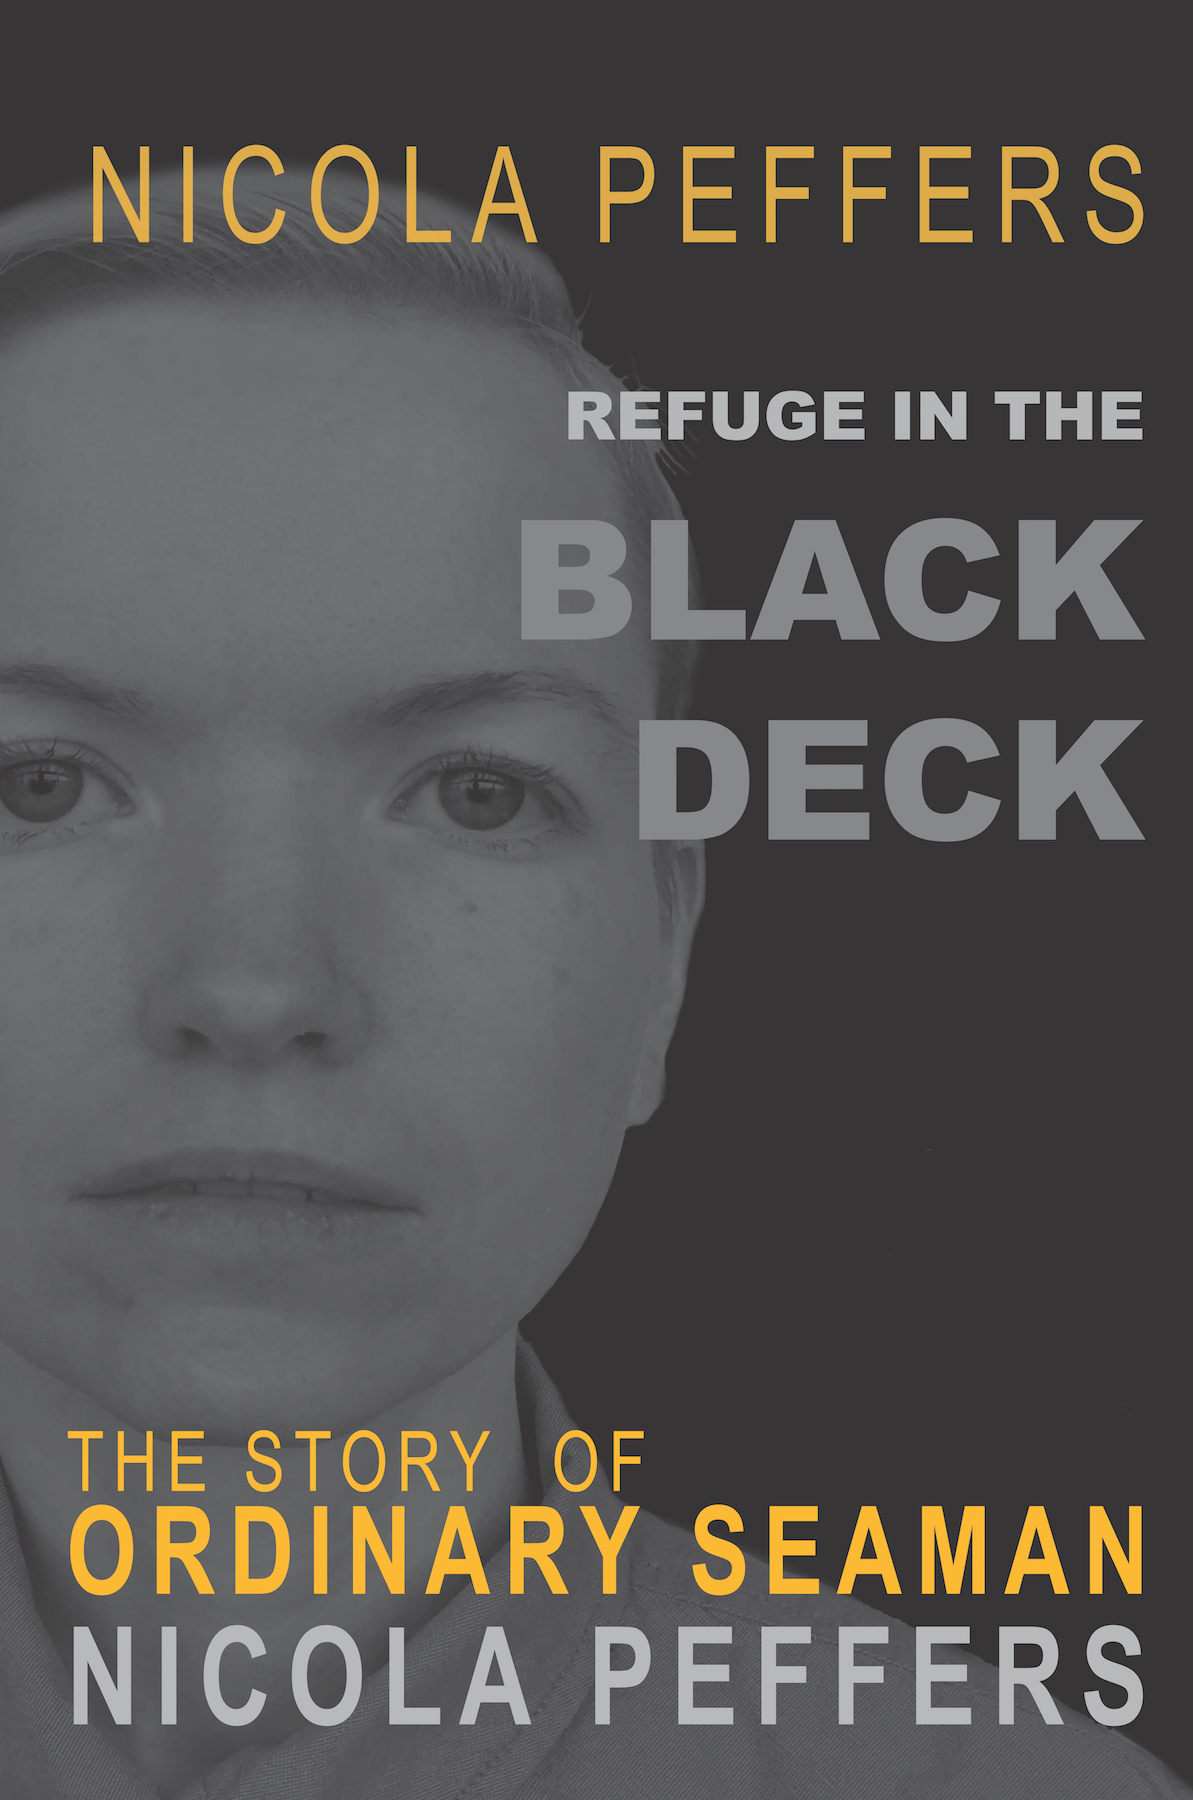 Refuge in the Black Deck